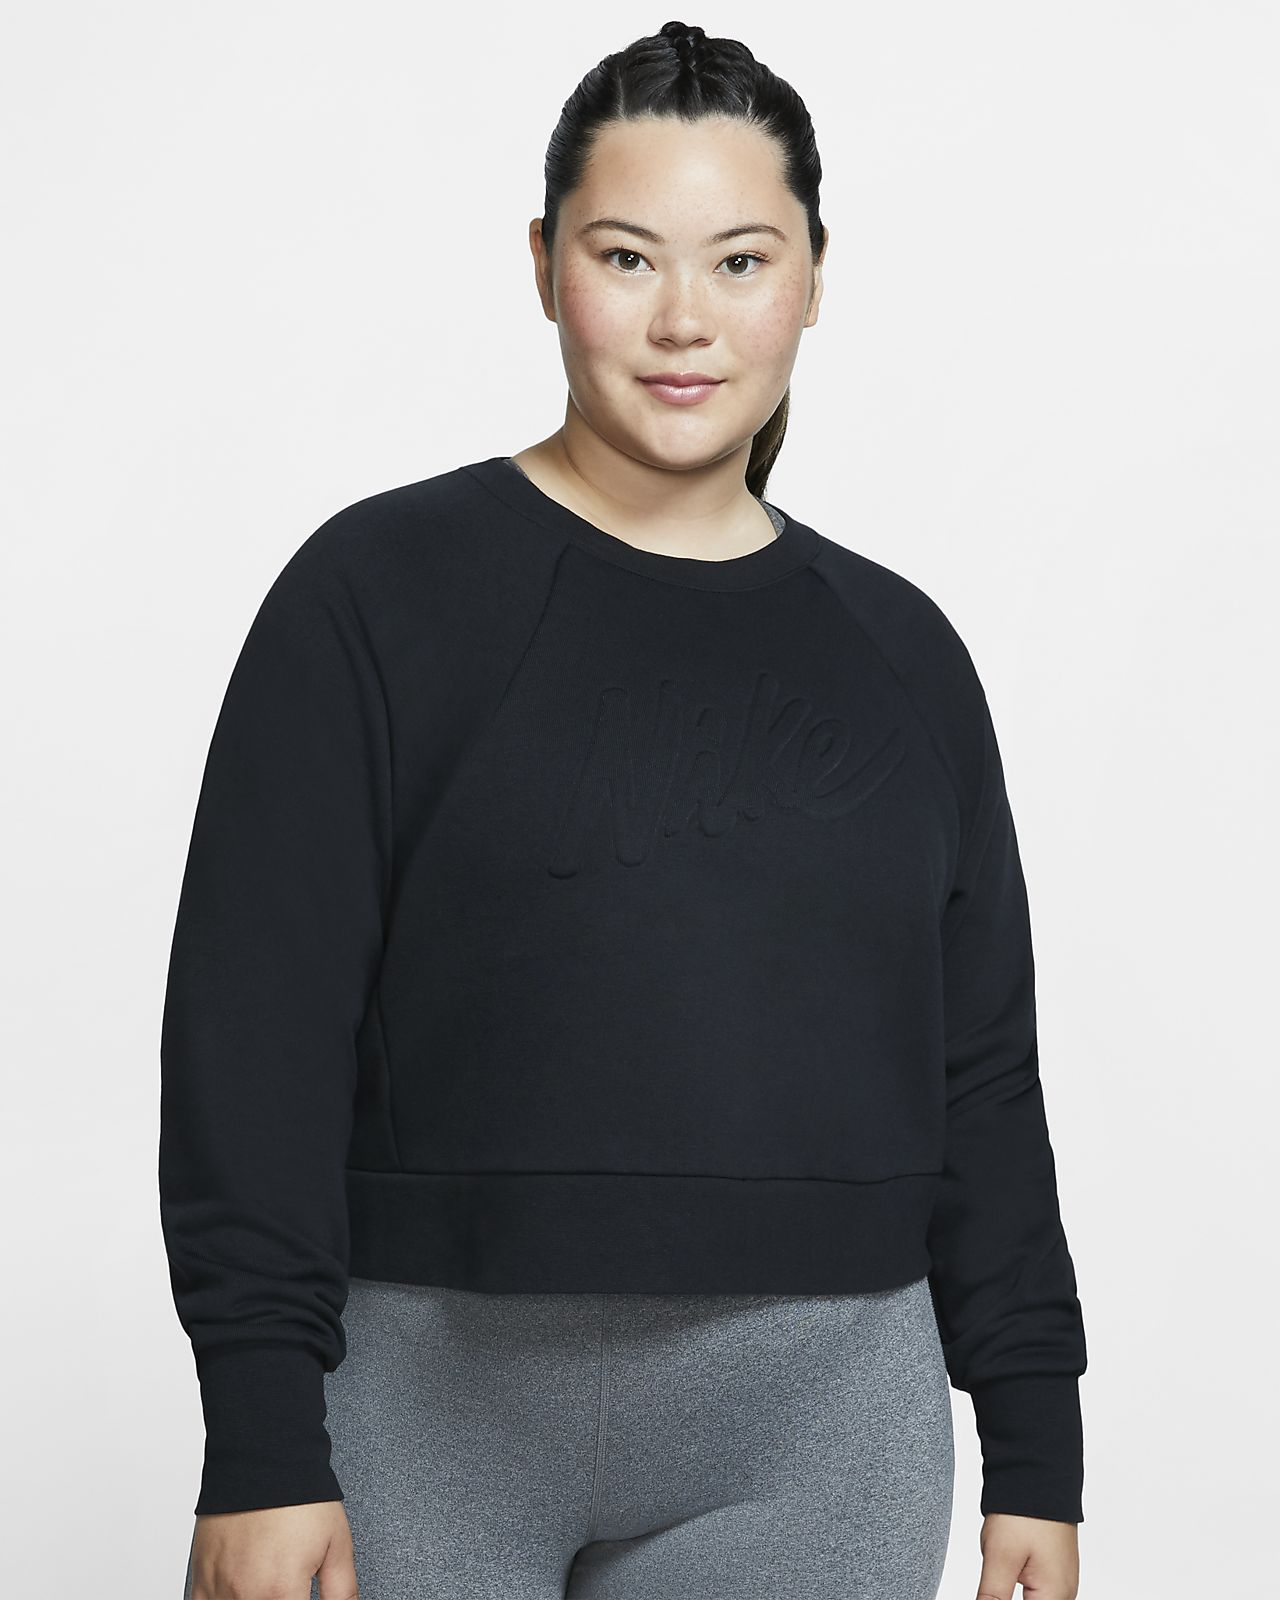 Nike Dri-FIT Luxe Women's Long-Sleeve Training Top (Plus Size)